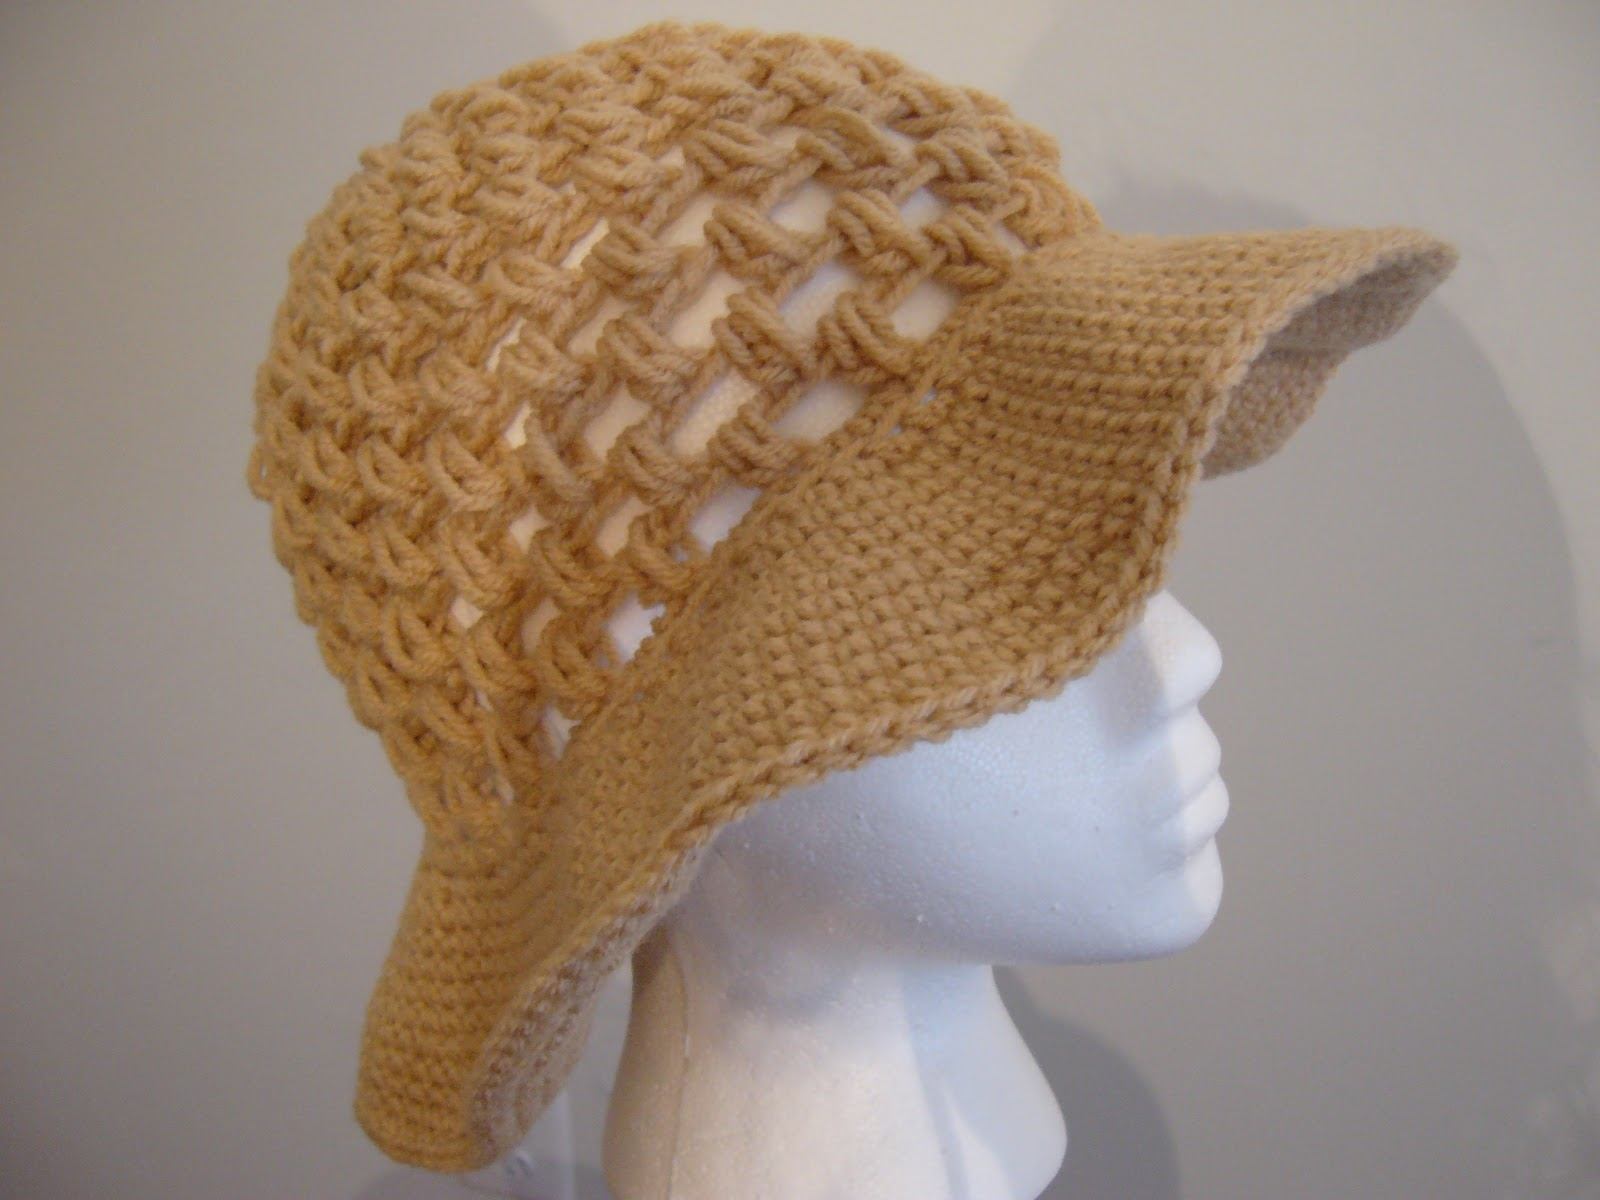 Crochet Hat Patterns Free : Crochet Indian Summer Hat - Knitting Patterns and Crochet Patterns